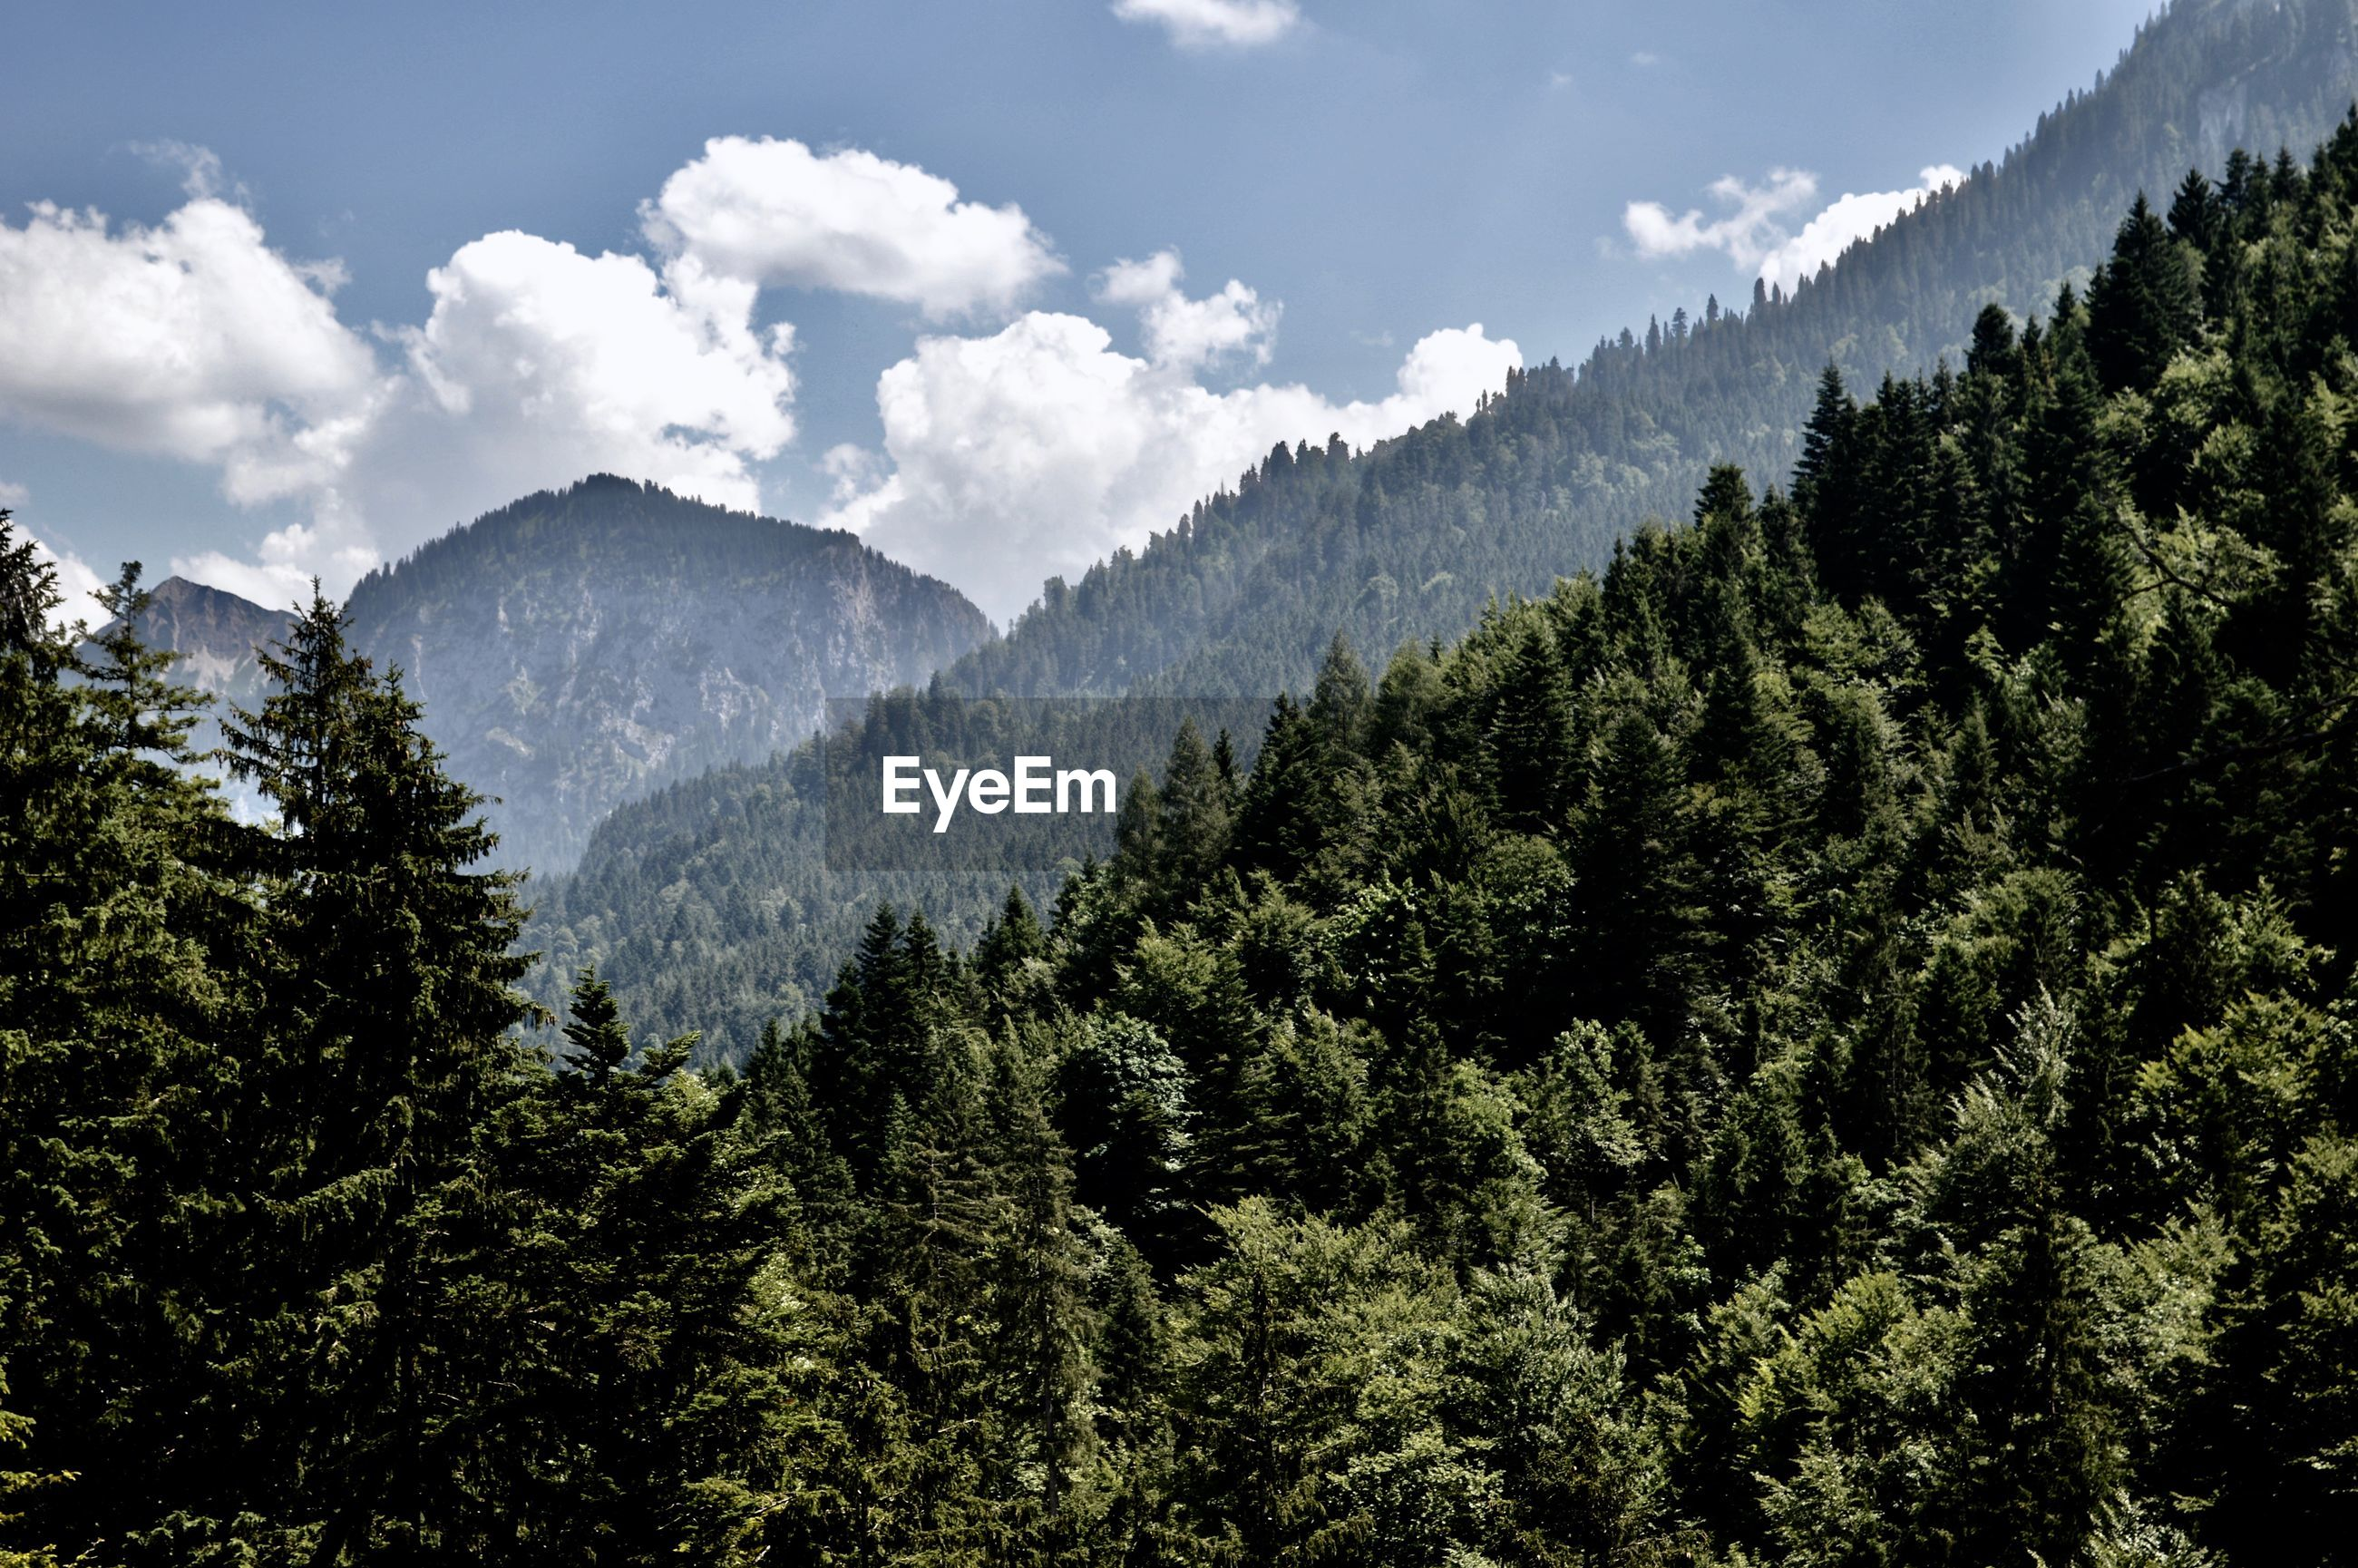 SCENIC VIEW OF MOUNTAINS AND TREES